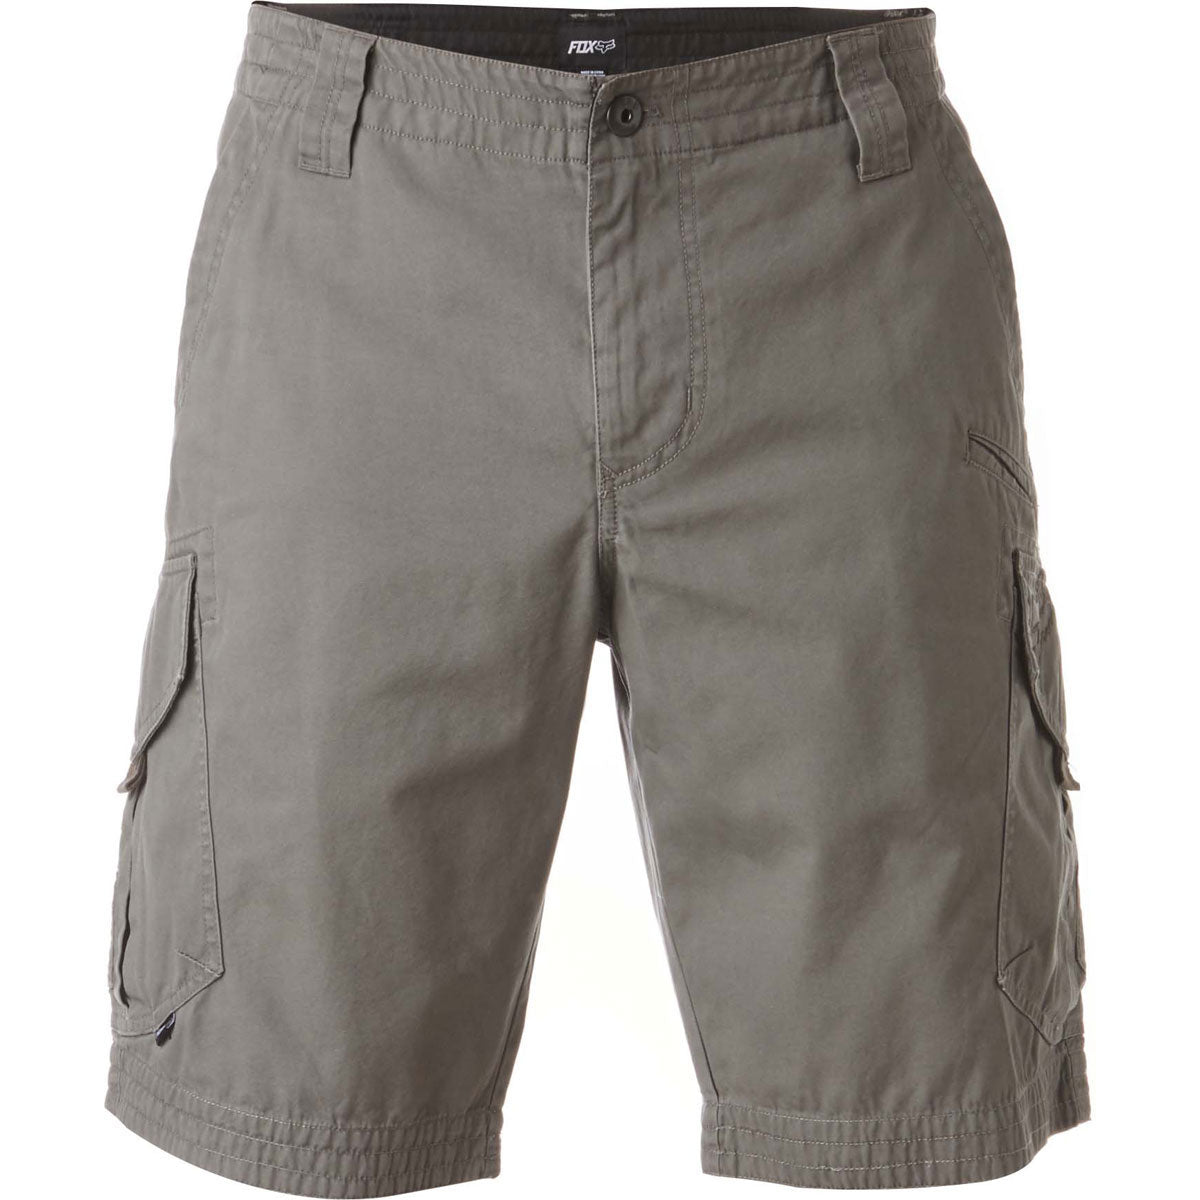 Fox Racing Slambozo Men's Cargo Shorts-19043